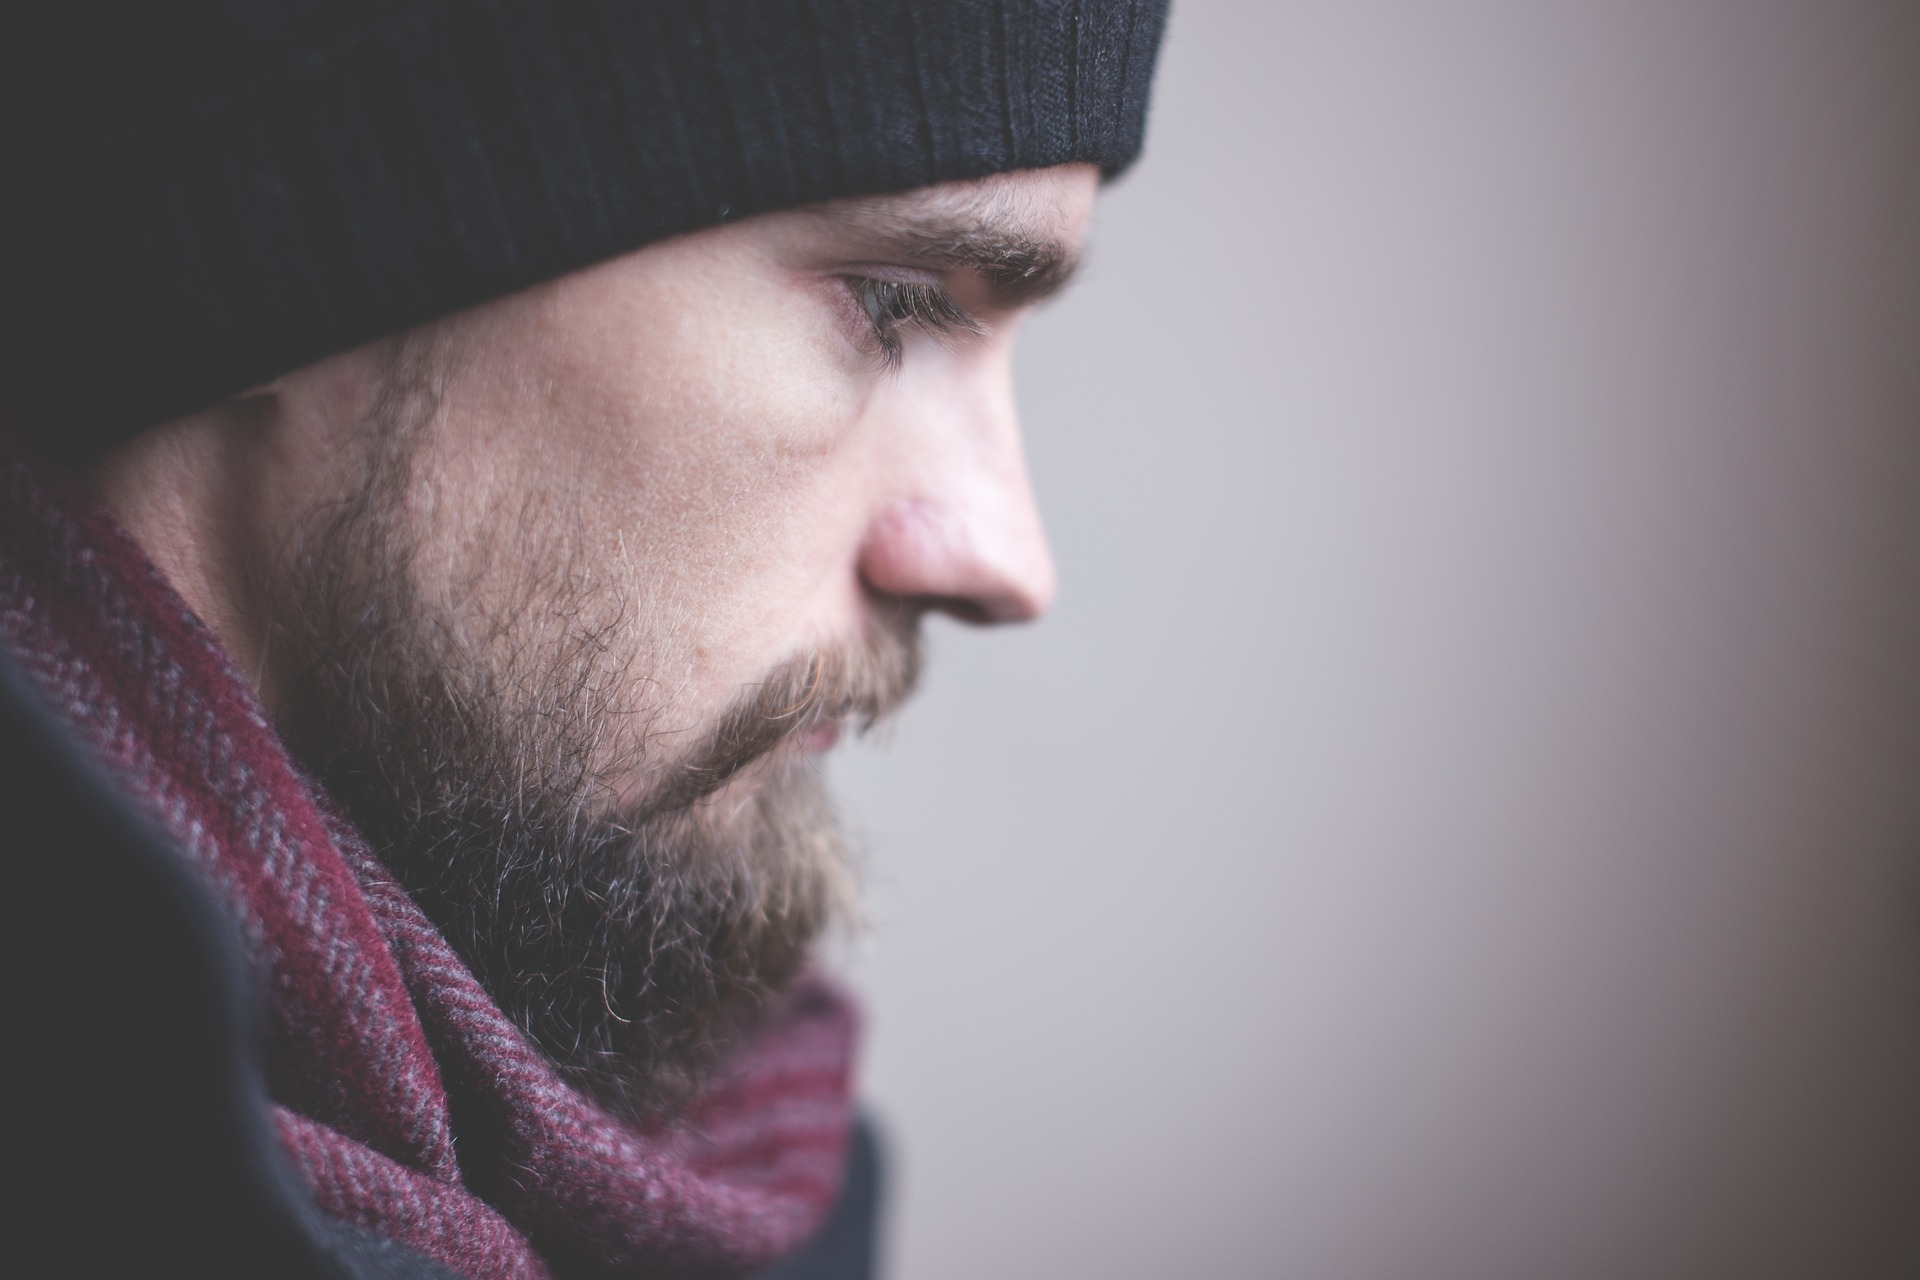 Got the winter blues? How to combat seasonal depression